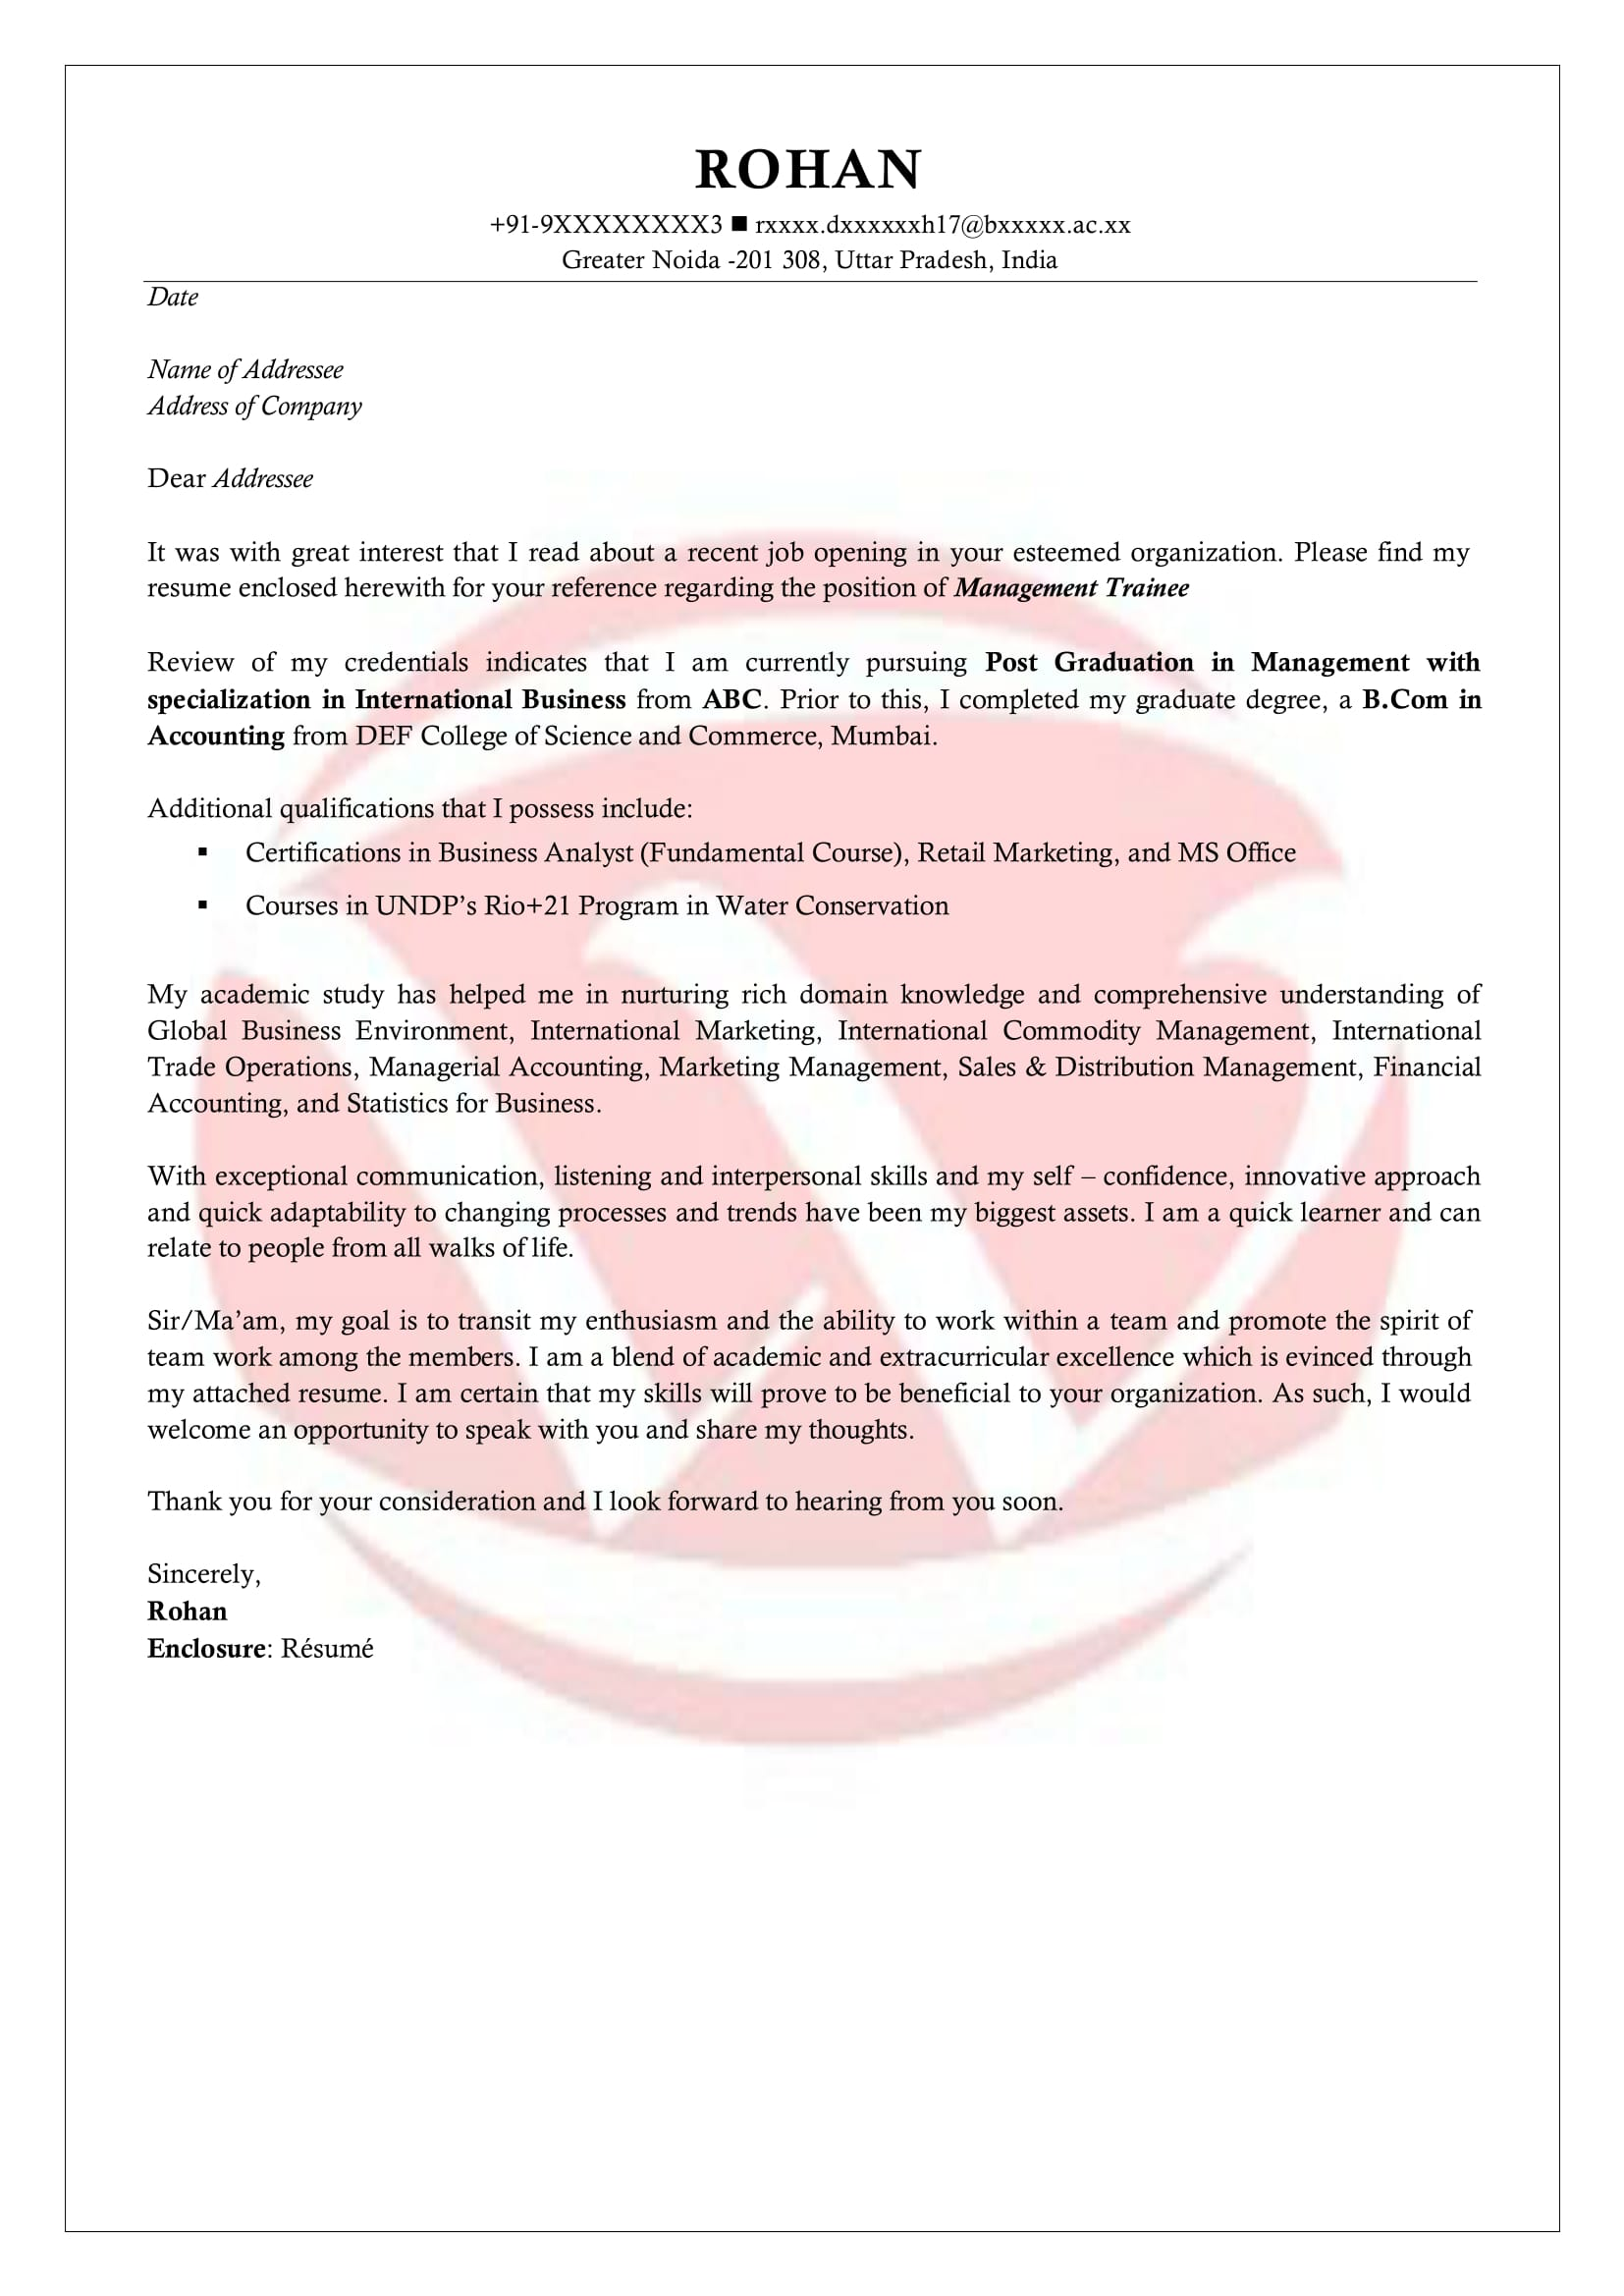 Internship Sample Cover Letter Format, Download Cover Letter ...